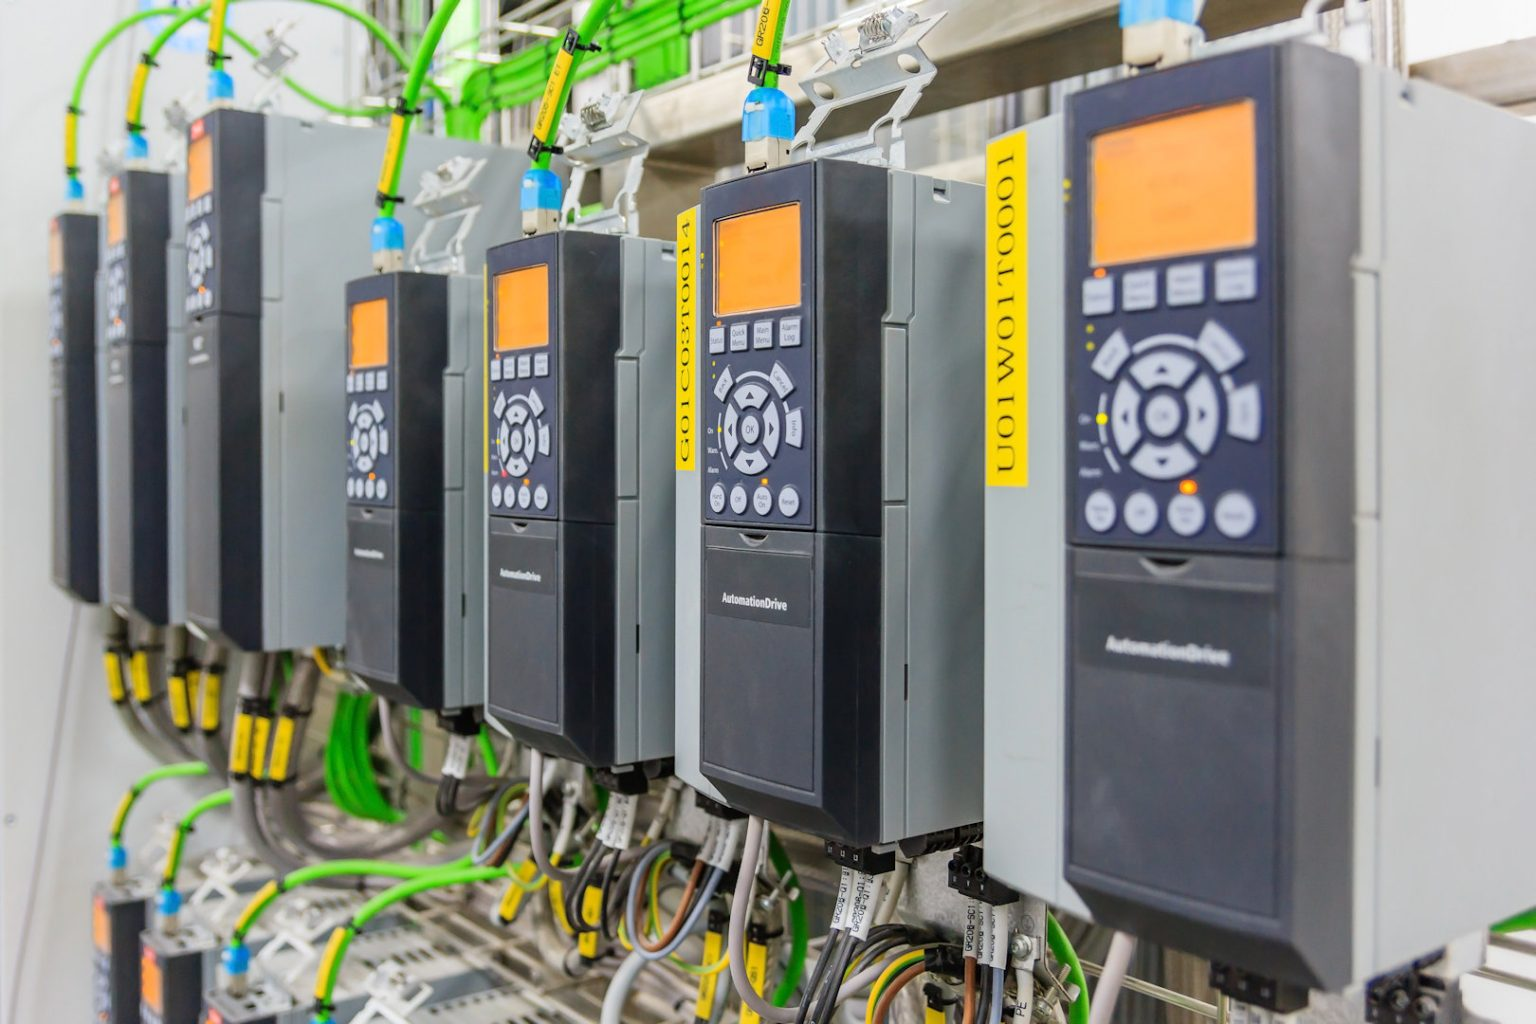 variable speed drives installed on wall with shielded electrical cable